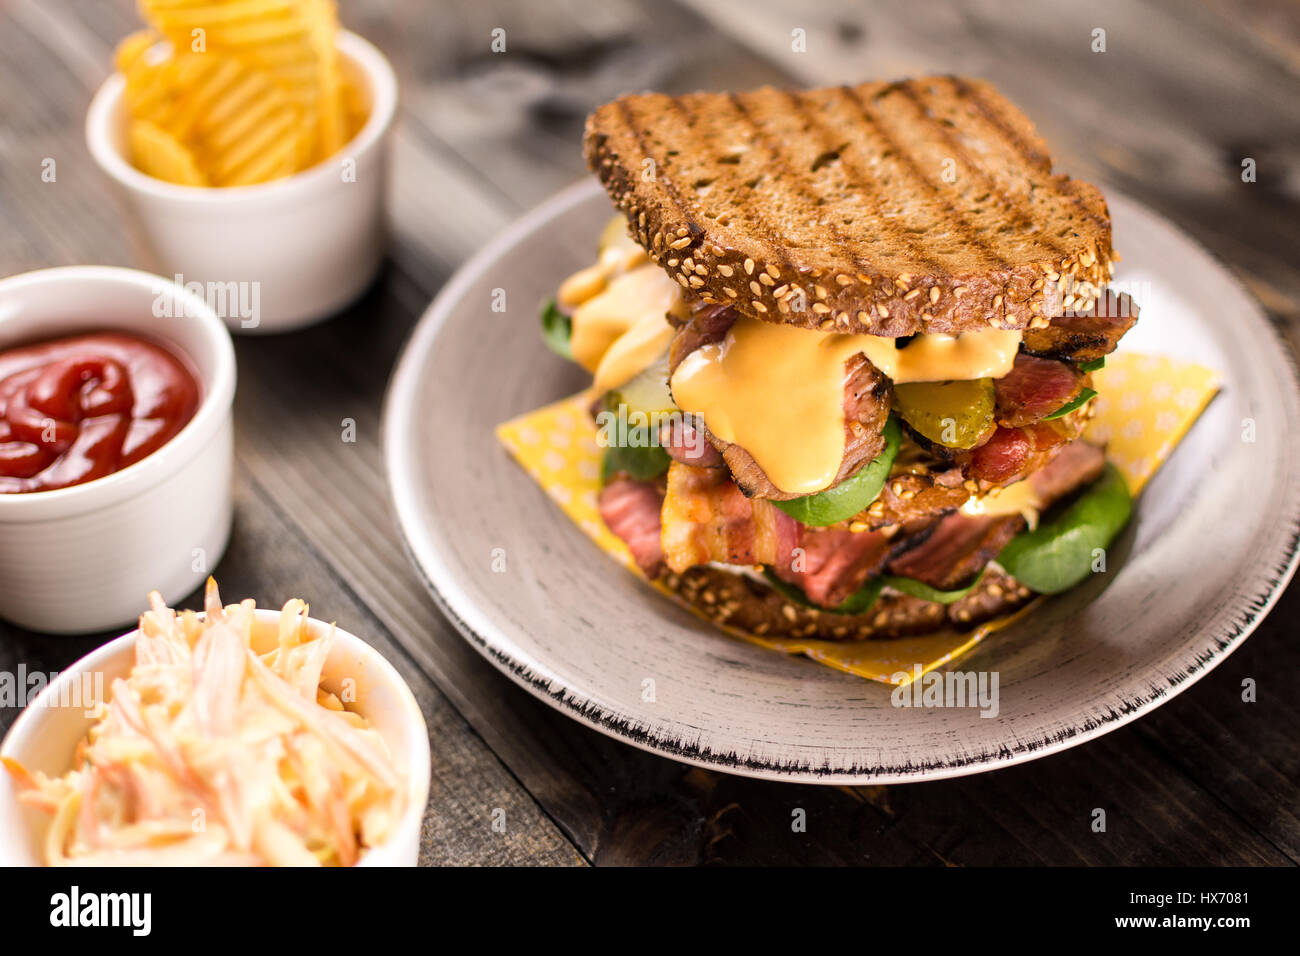 Big Homemade Sandwich with Roast Beef, Bacon, Pickles, Baby Spinach and Coleslaw Dressing in Toasted Bread - Stock Image